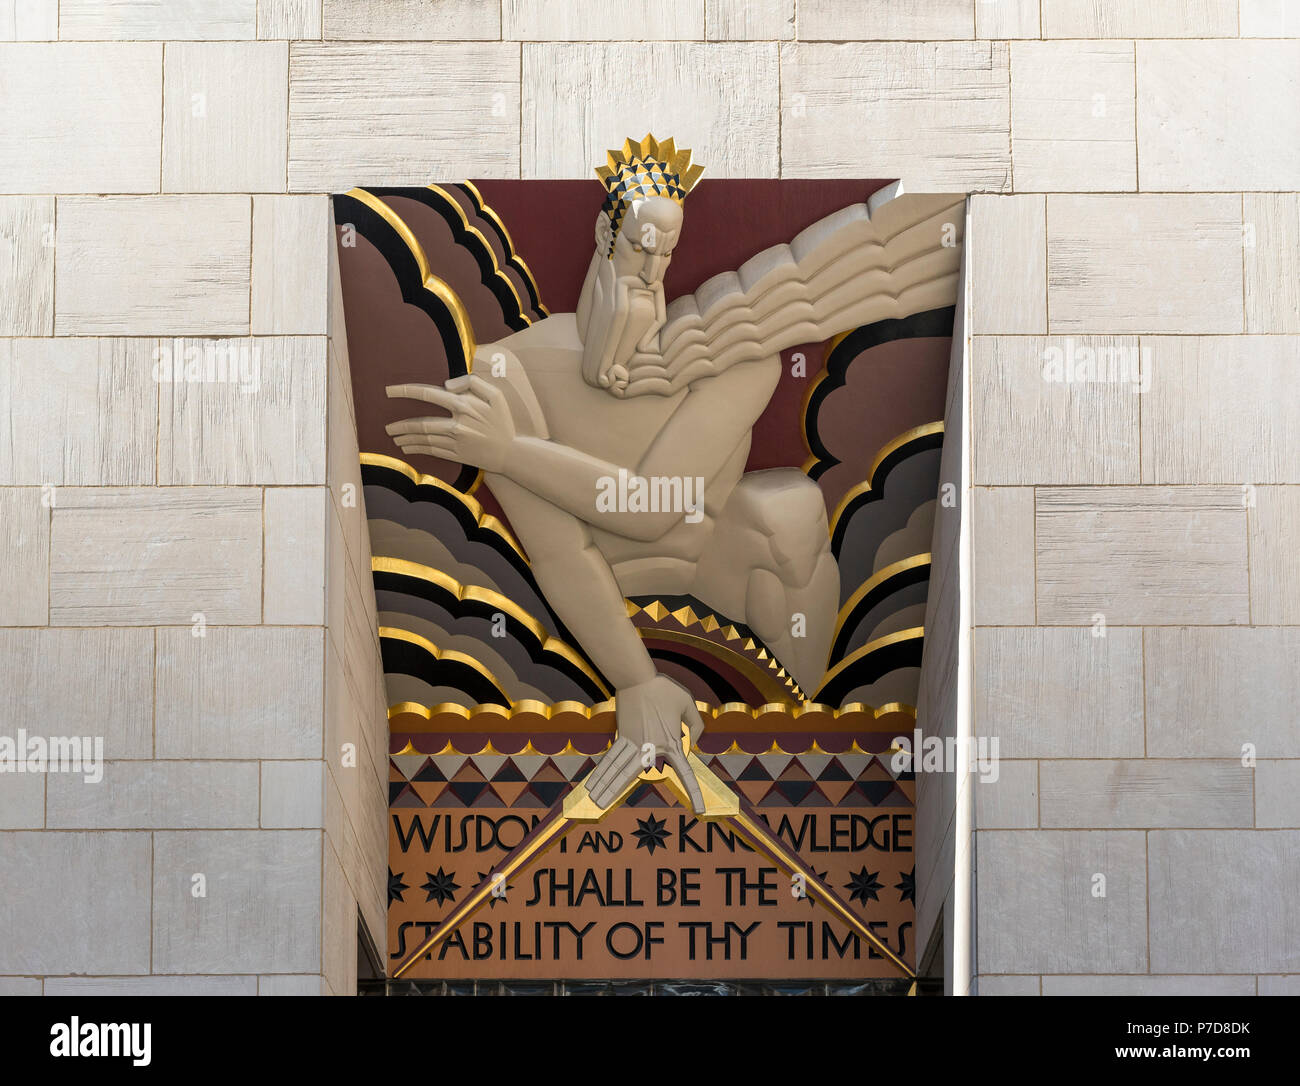 Art Deco sculpture Wisdom and Knowledge at entrance to 30 Rockefeller Plaza, Comcast Building, Rockefeller Center, New York, USA - Stock Image